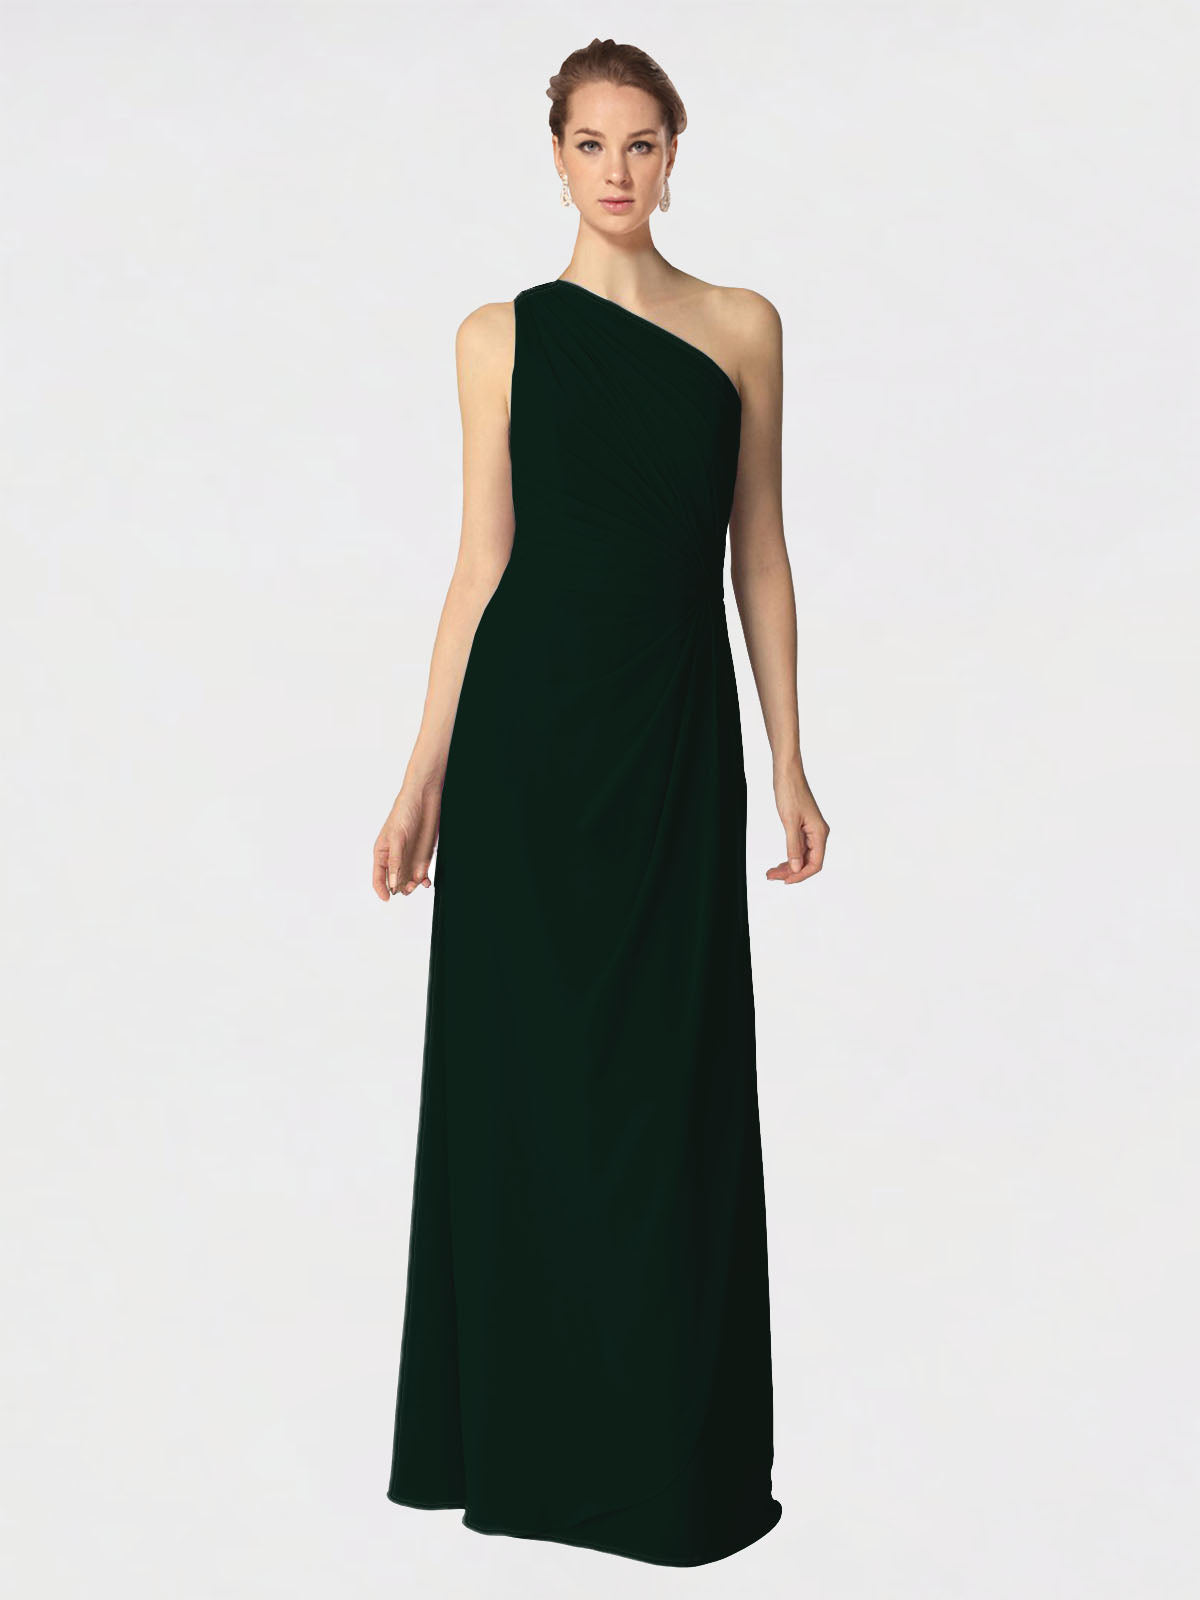 Long A-Line One Shoulder Sleeveless Ever Green Chiffon Bridesmaid Dress Aurora